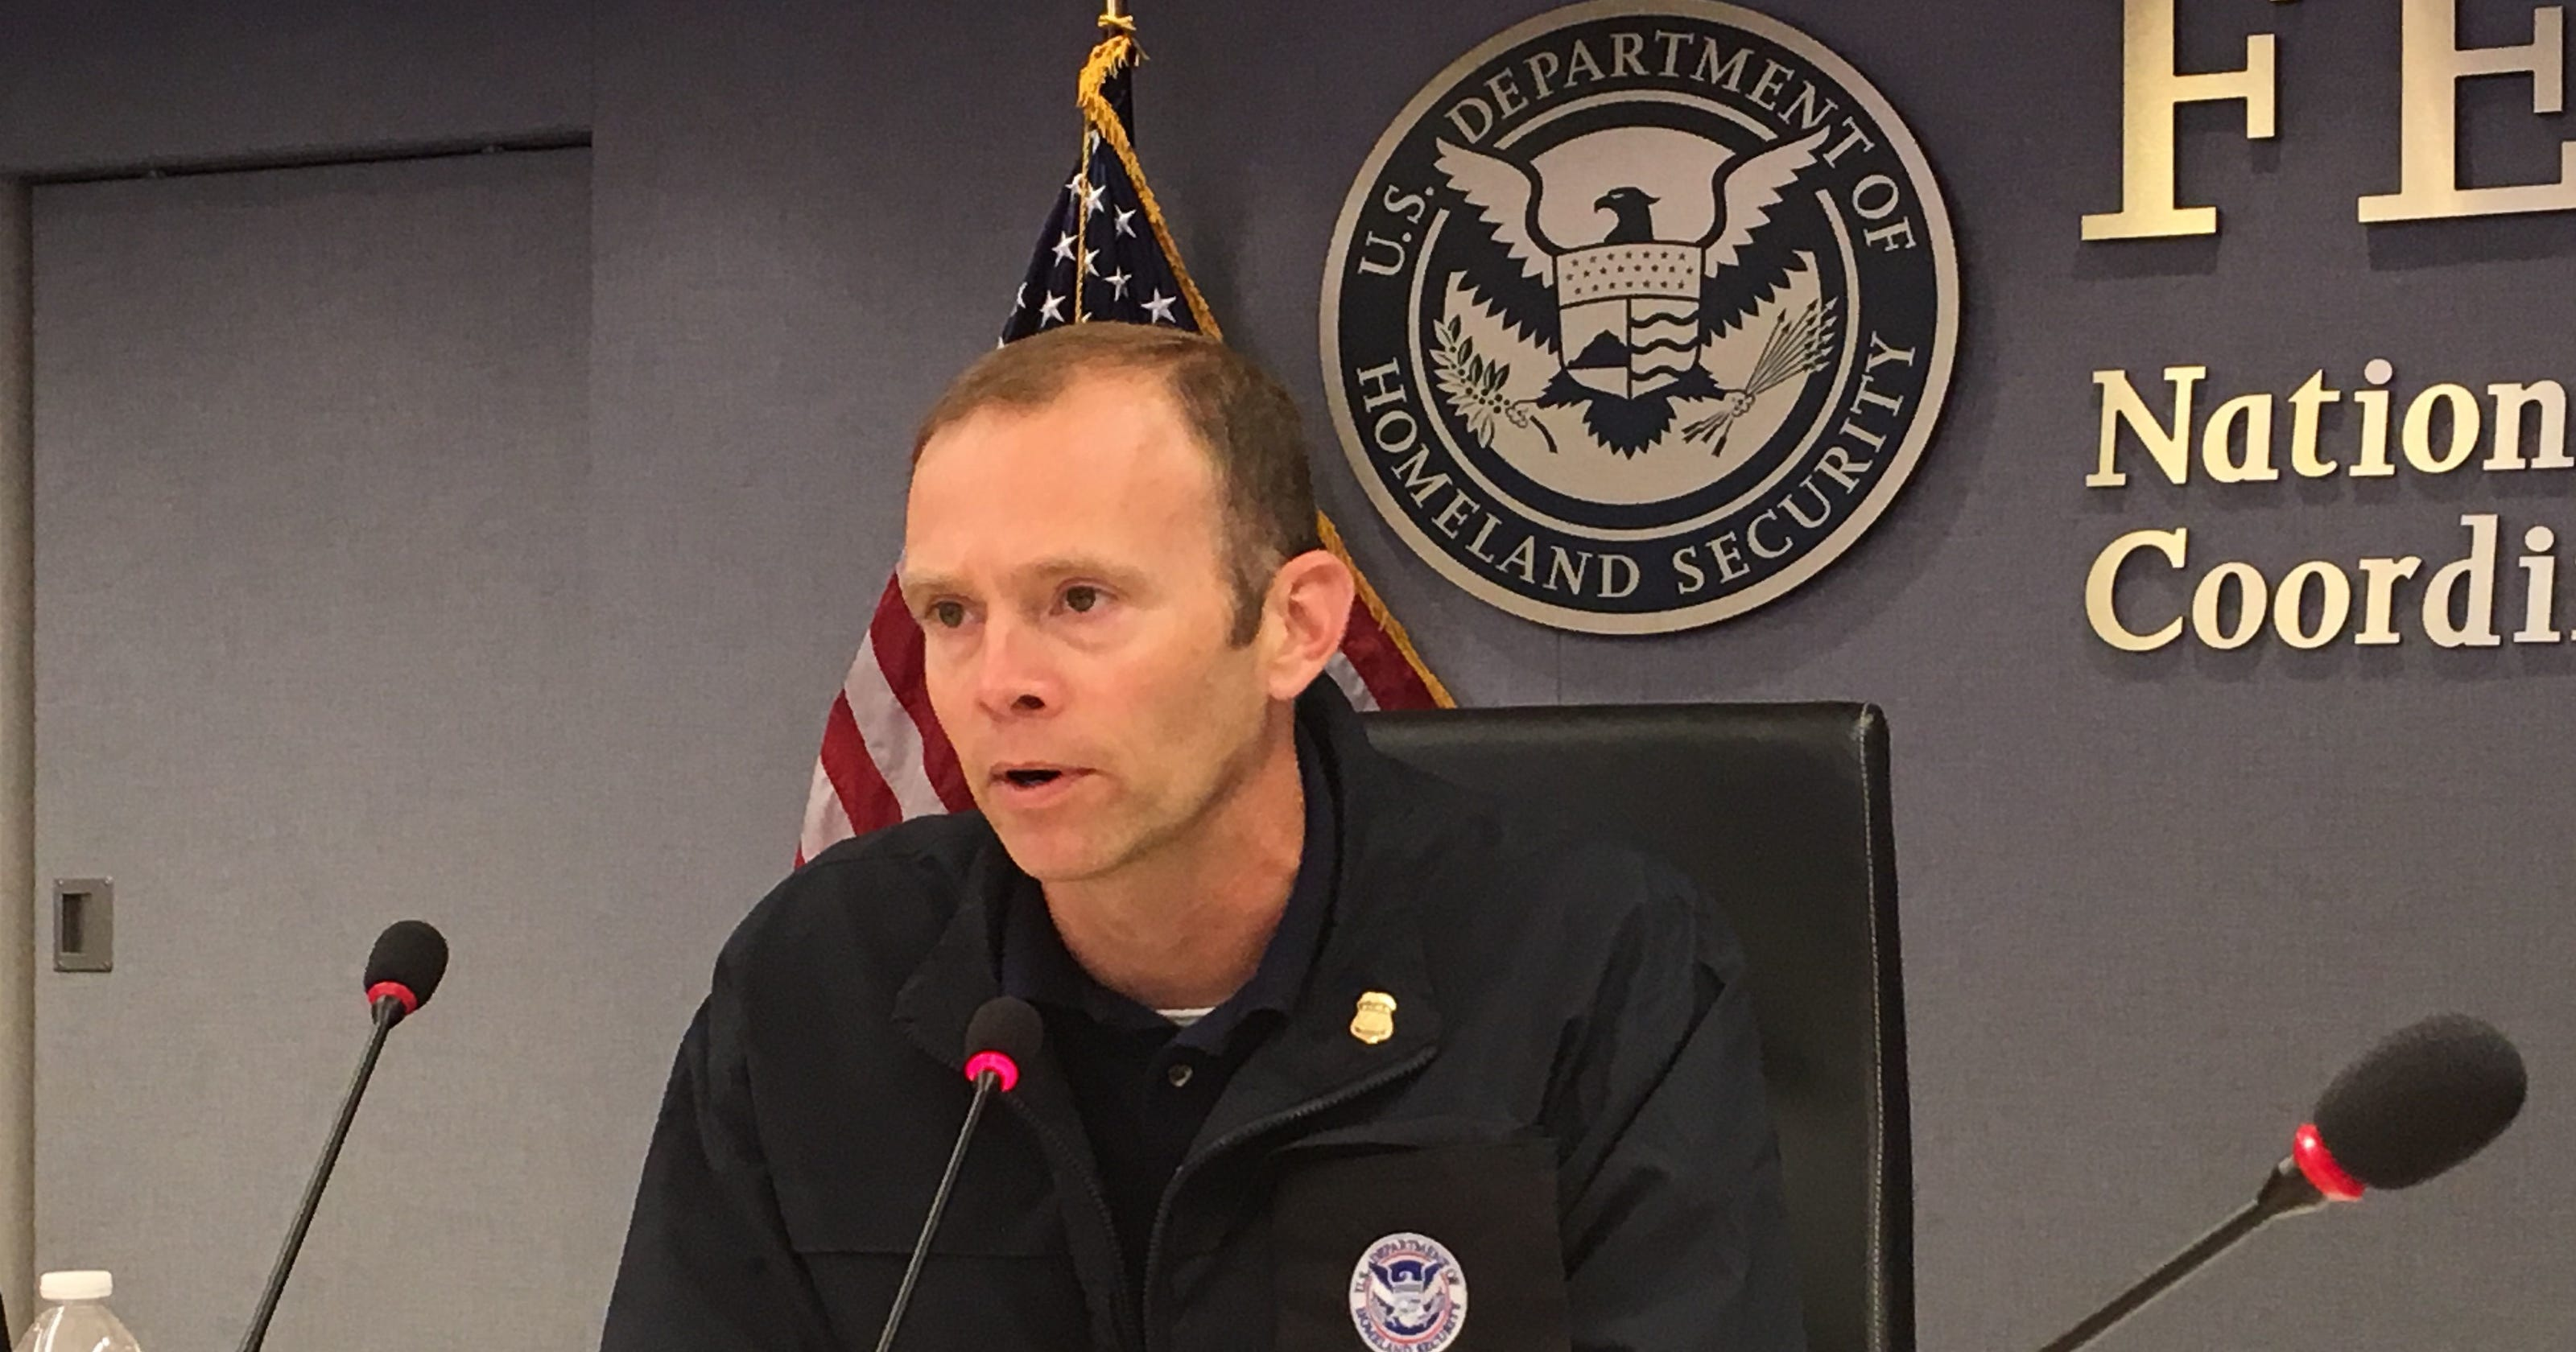 In shadow of Hurricane Maria, FEMA Chief Brock Long confronts Florence